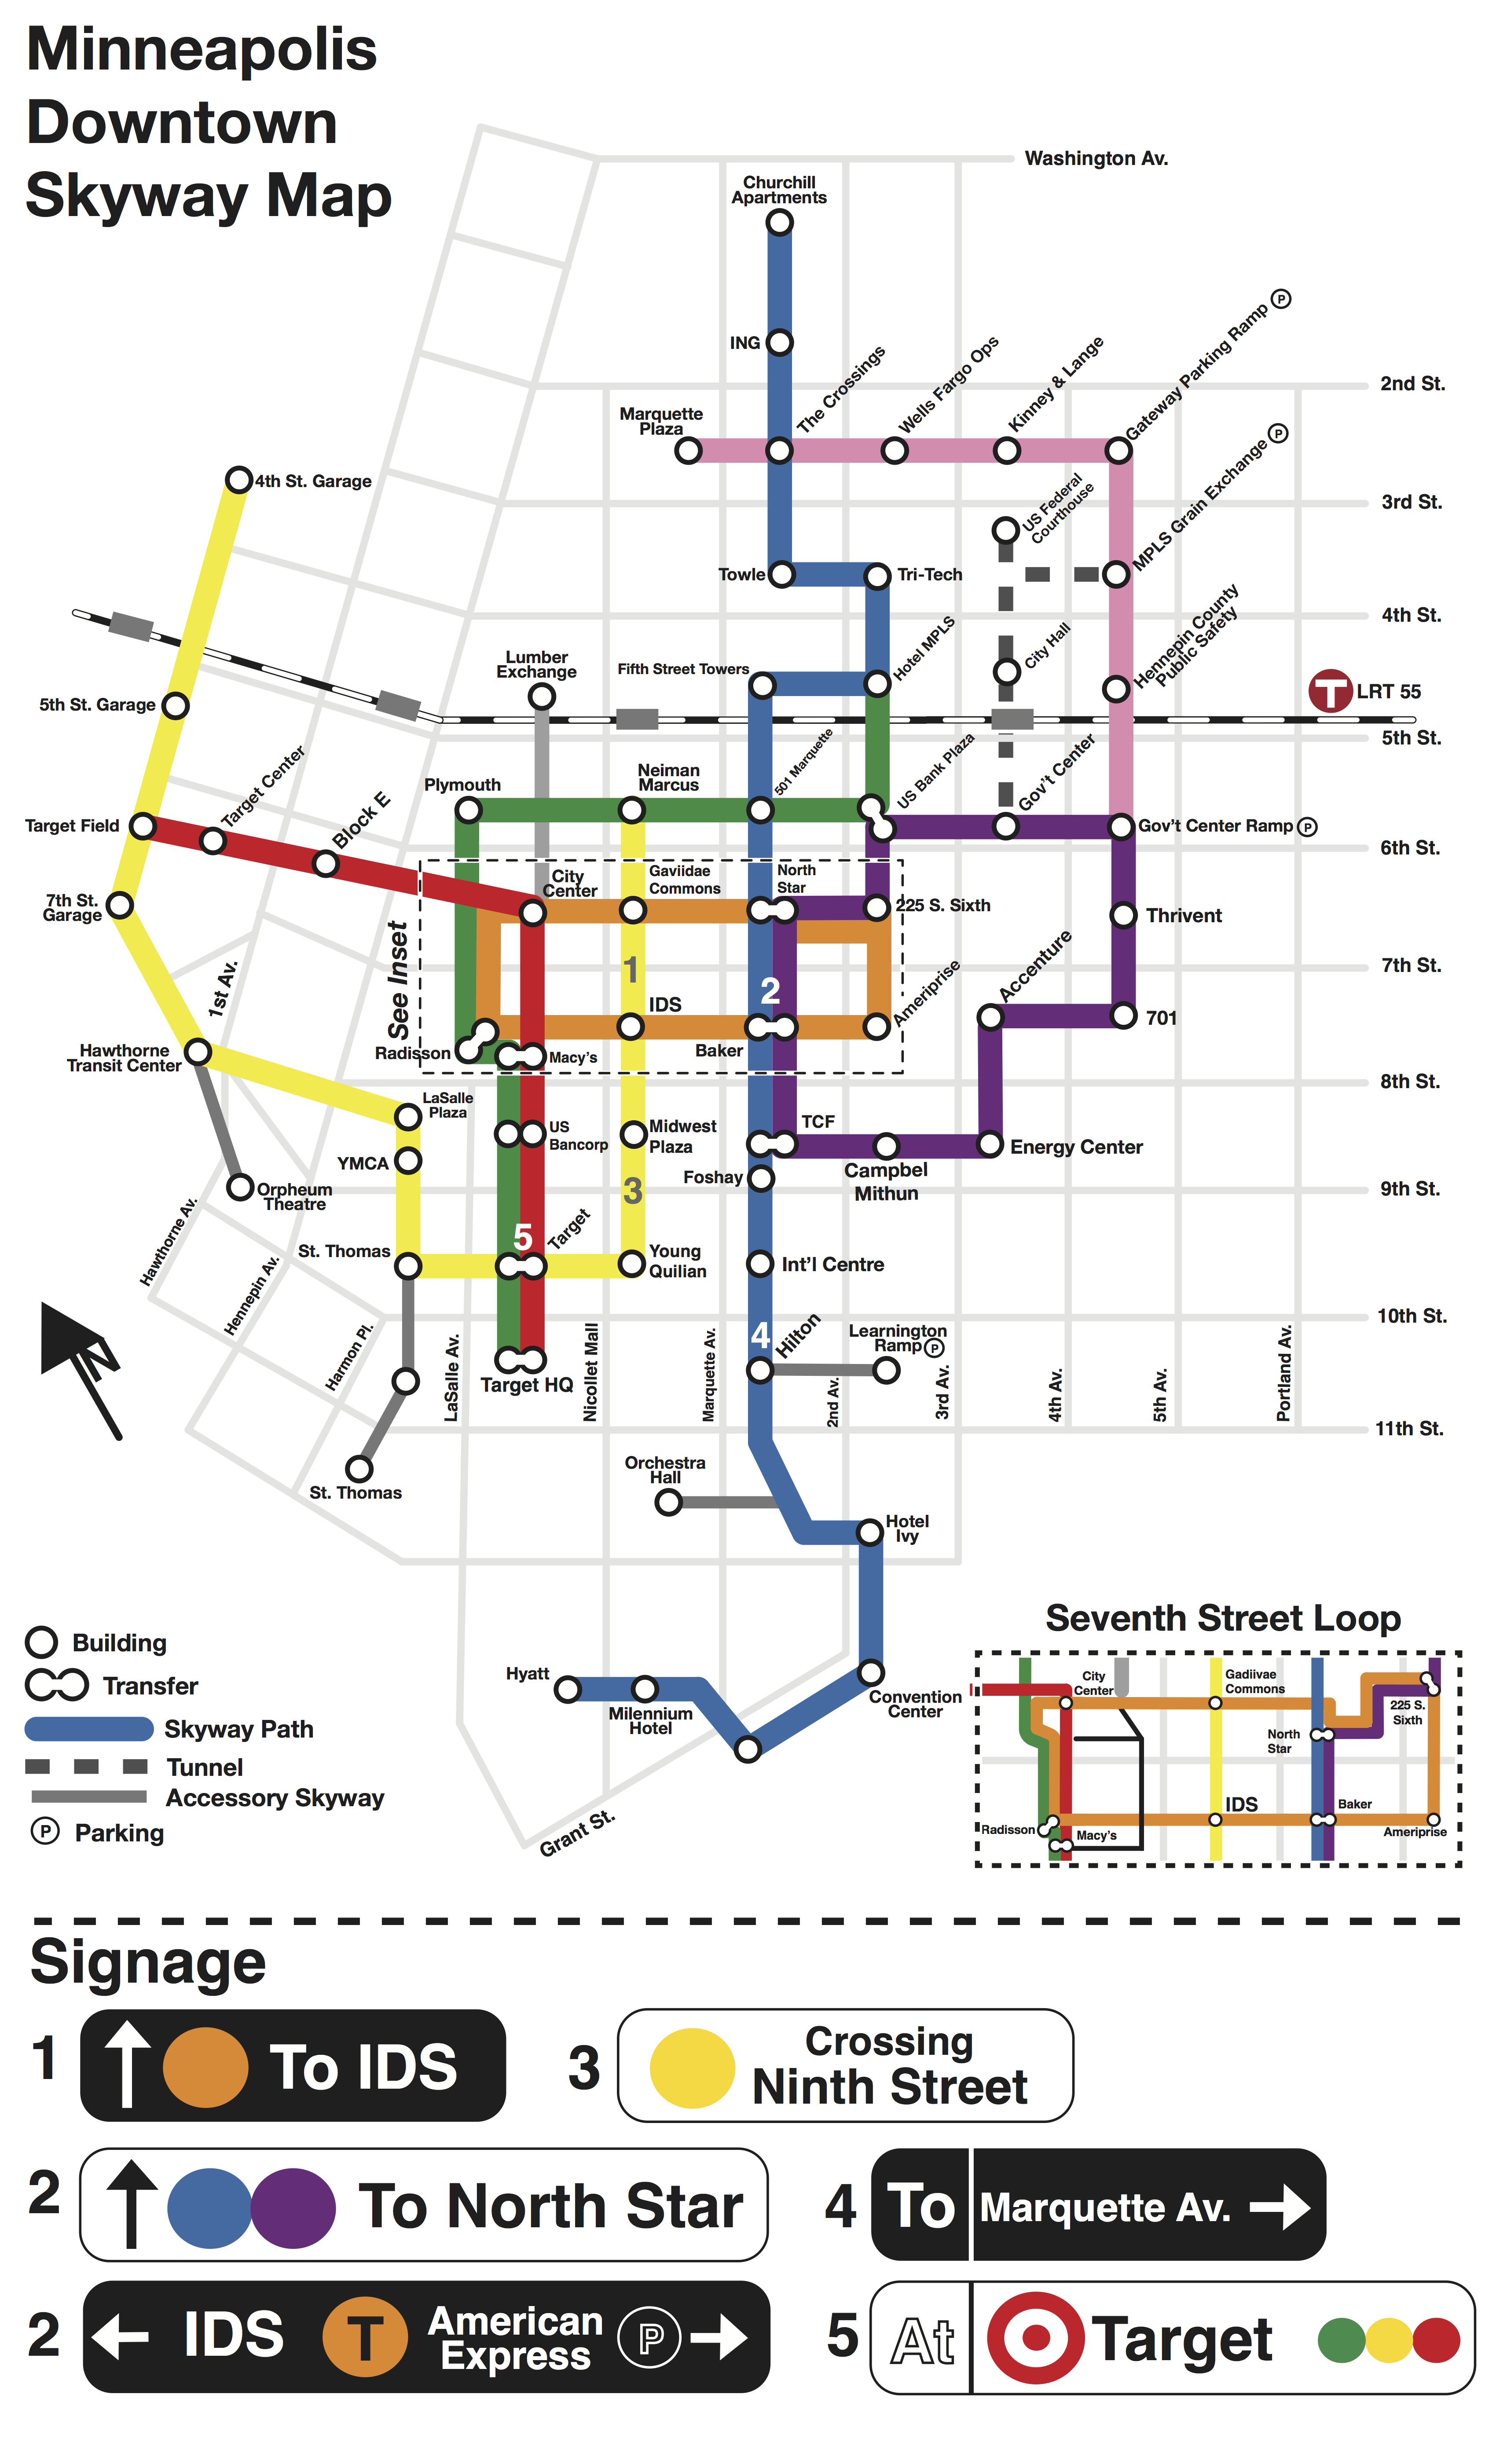 Downtown Minneapolis Skyway Map Minnesota by Design – Minneapolis Skyway Map